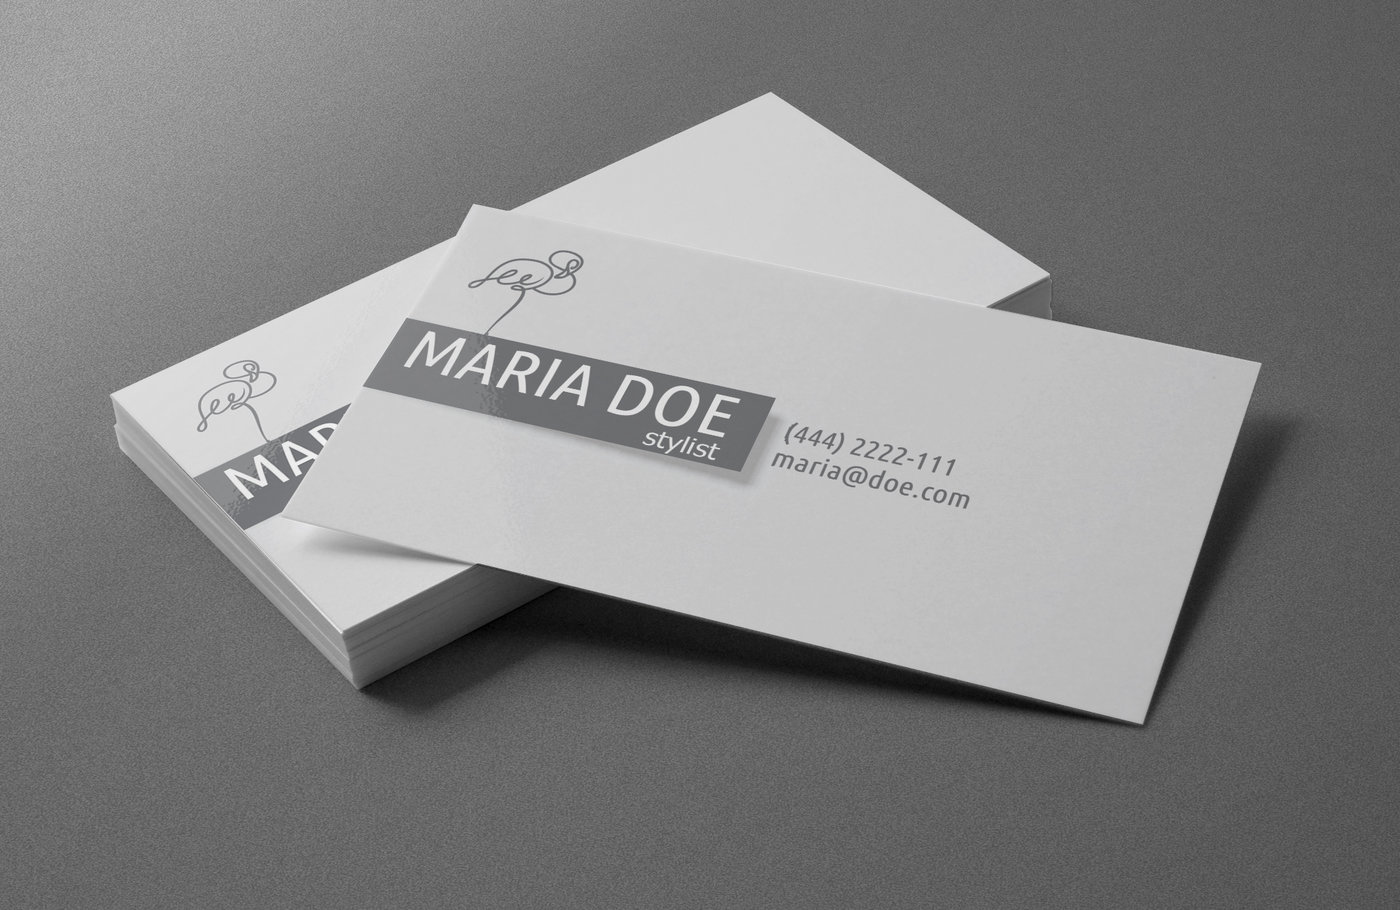 Personal stylist business cards free template by borce markoski personal stylist business cards free template by borce markoski at coroflot magicingreecefo Image collections